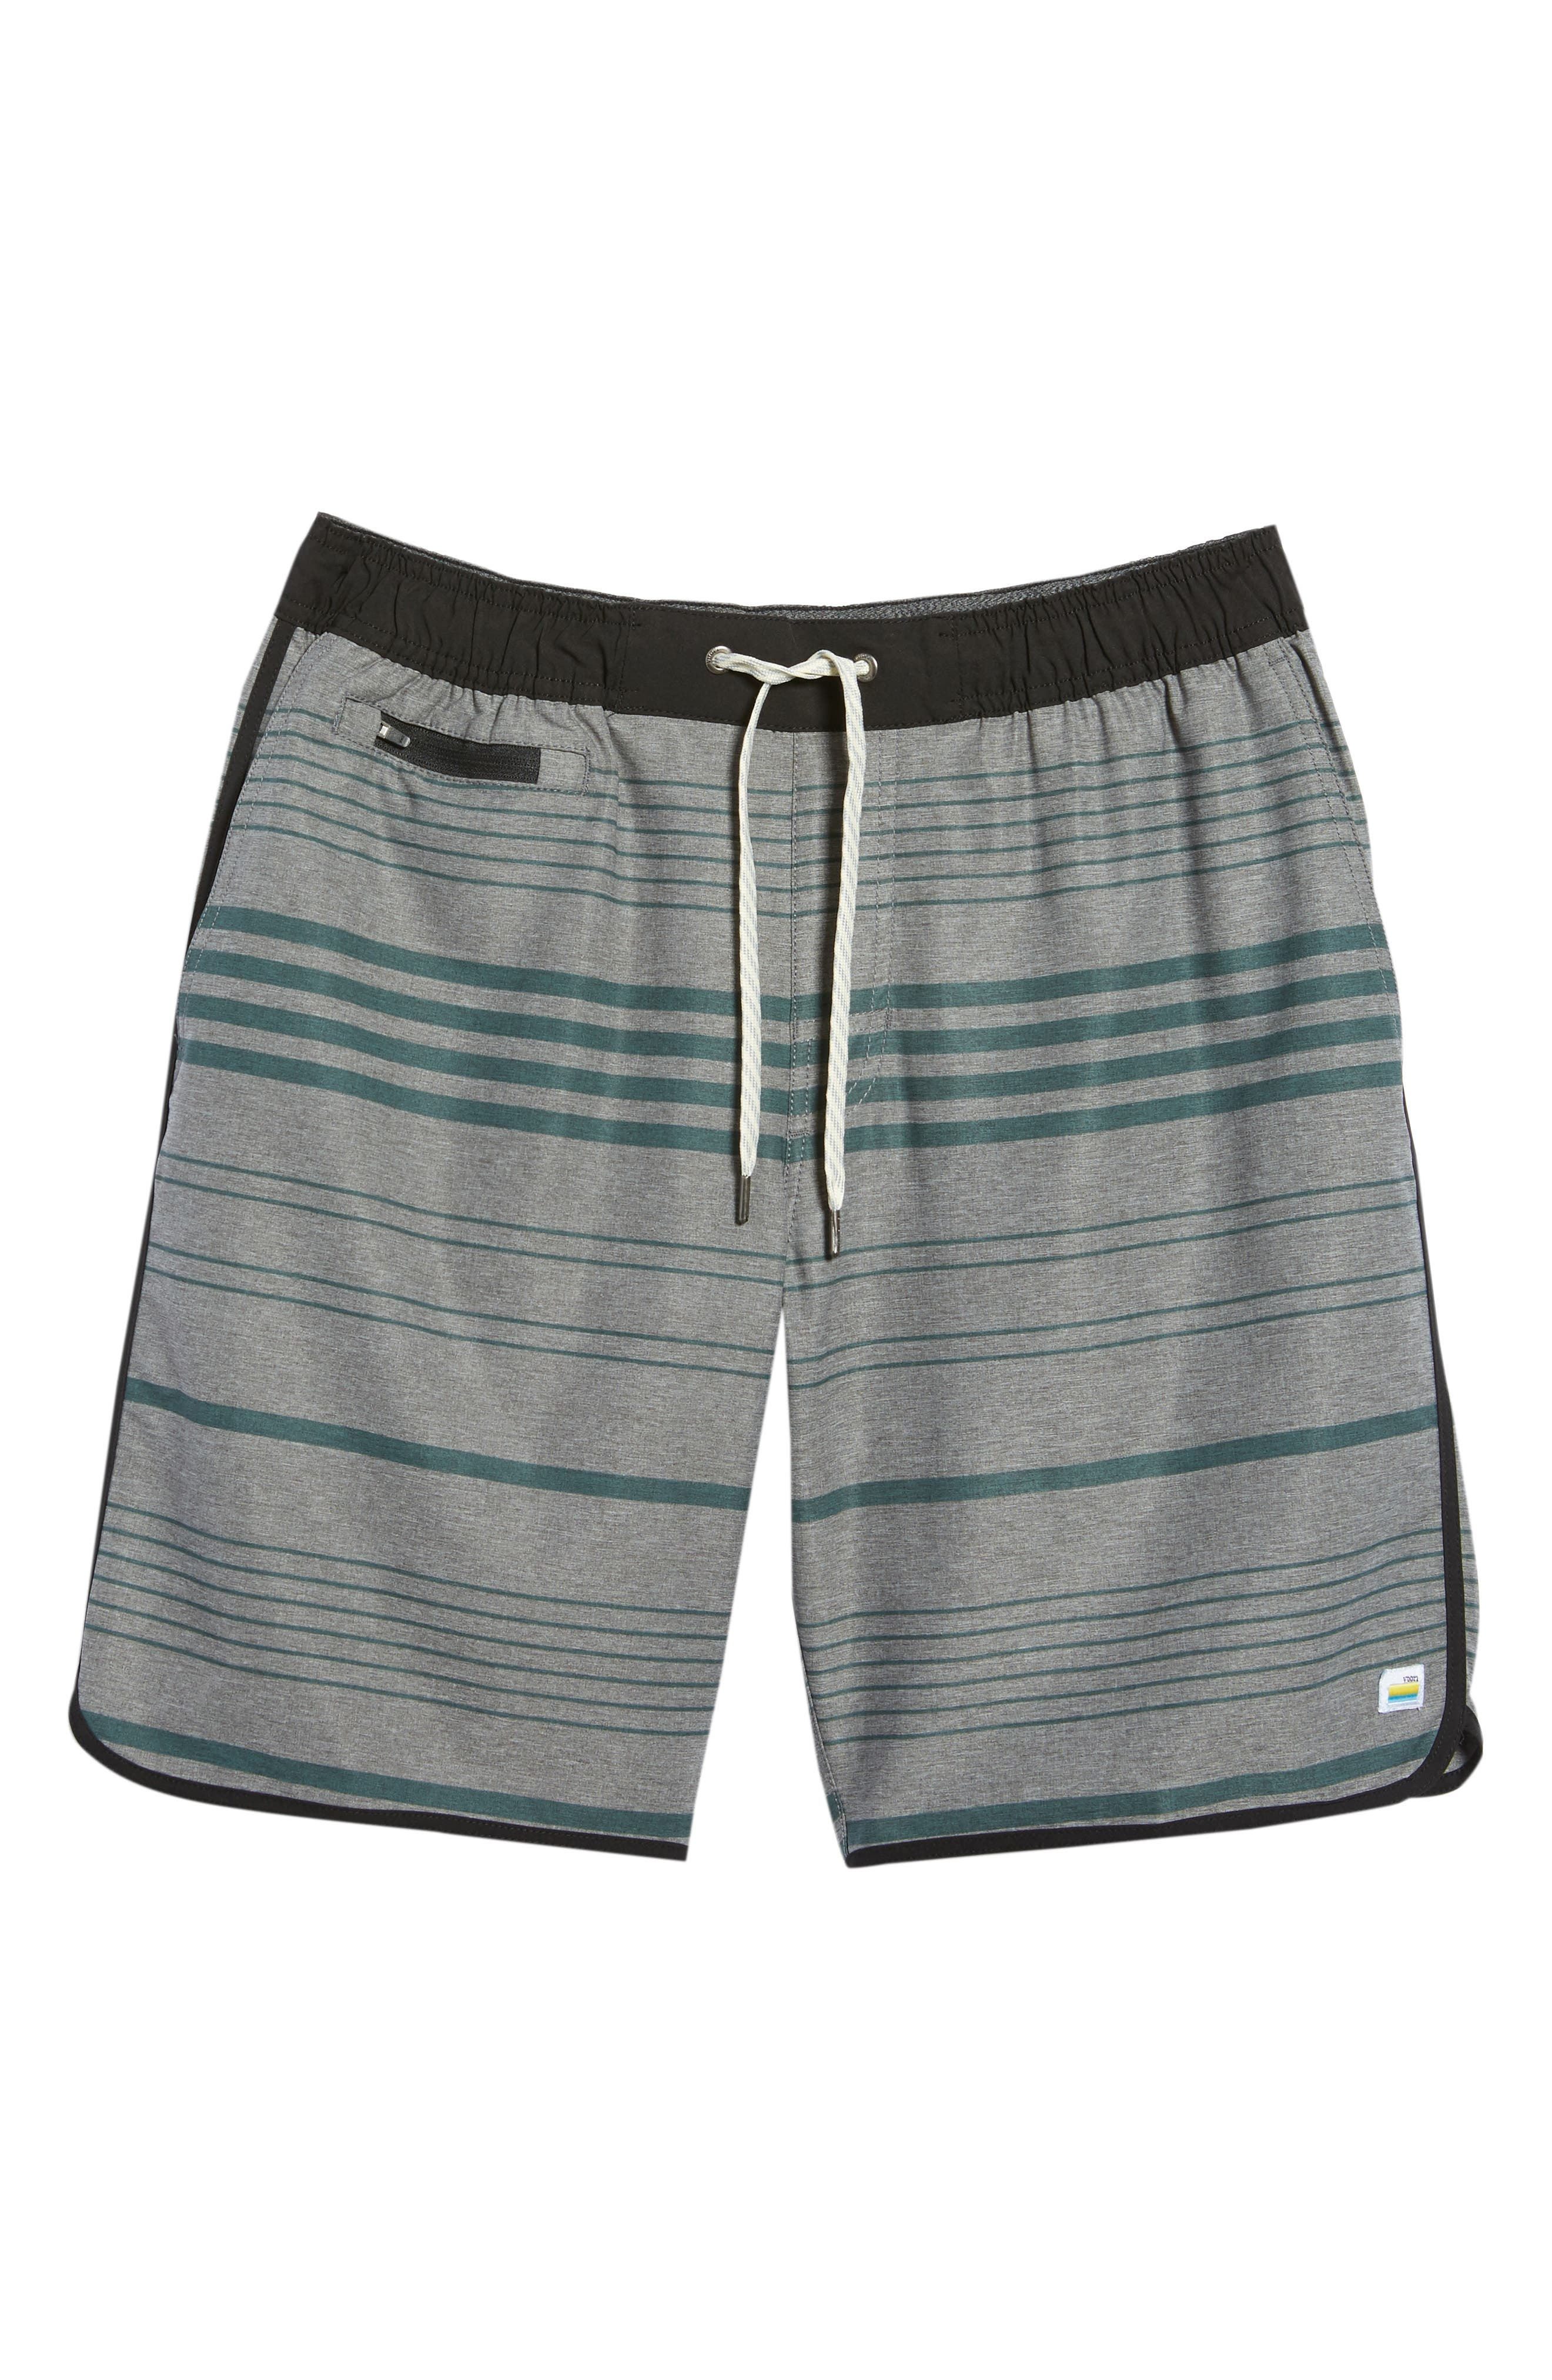 VUORI, Banks Performance Hybrid Shorts, Alternate thumbnail 7, color, CANYON MICRO STRIPE